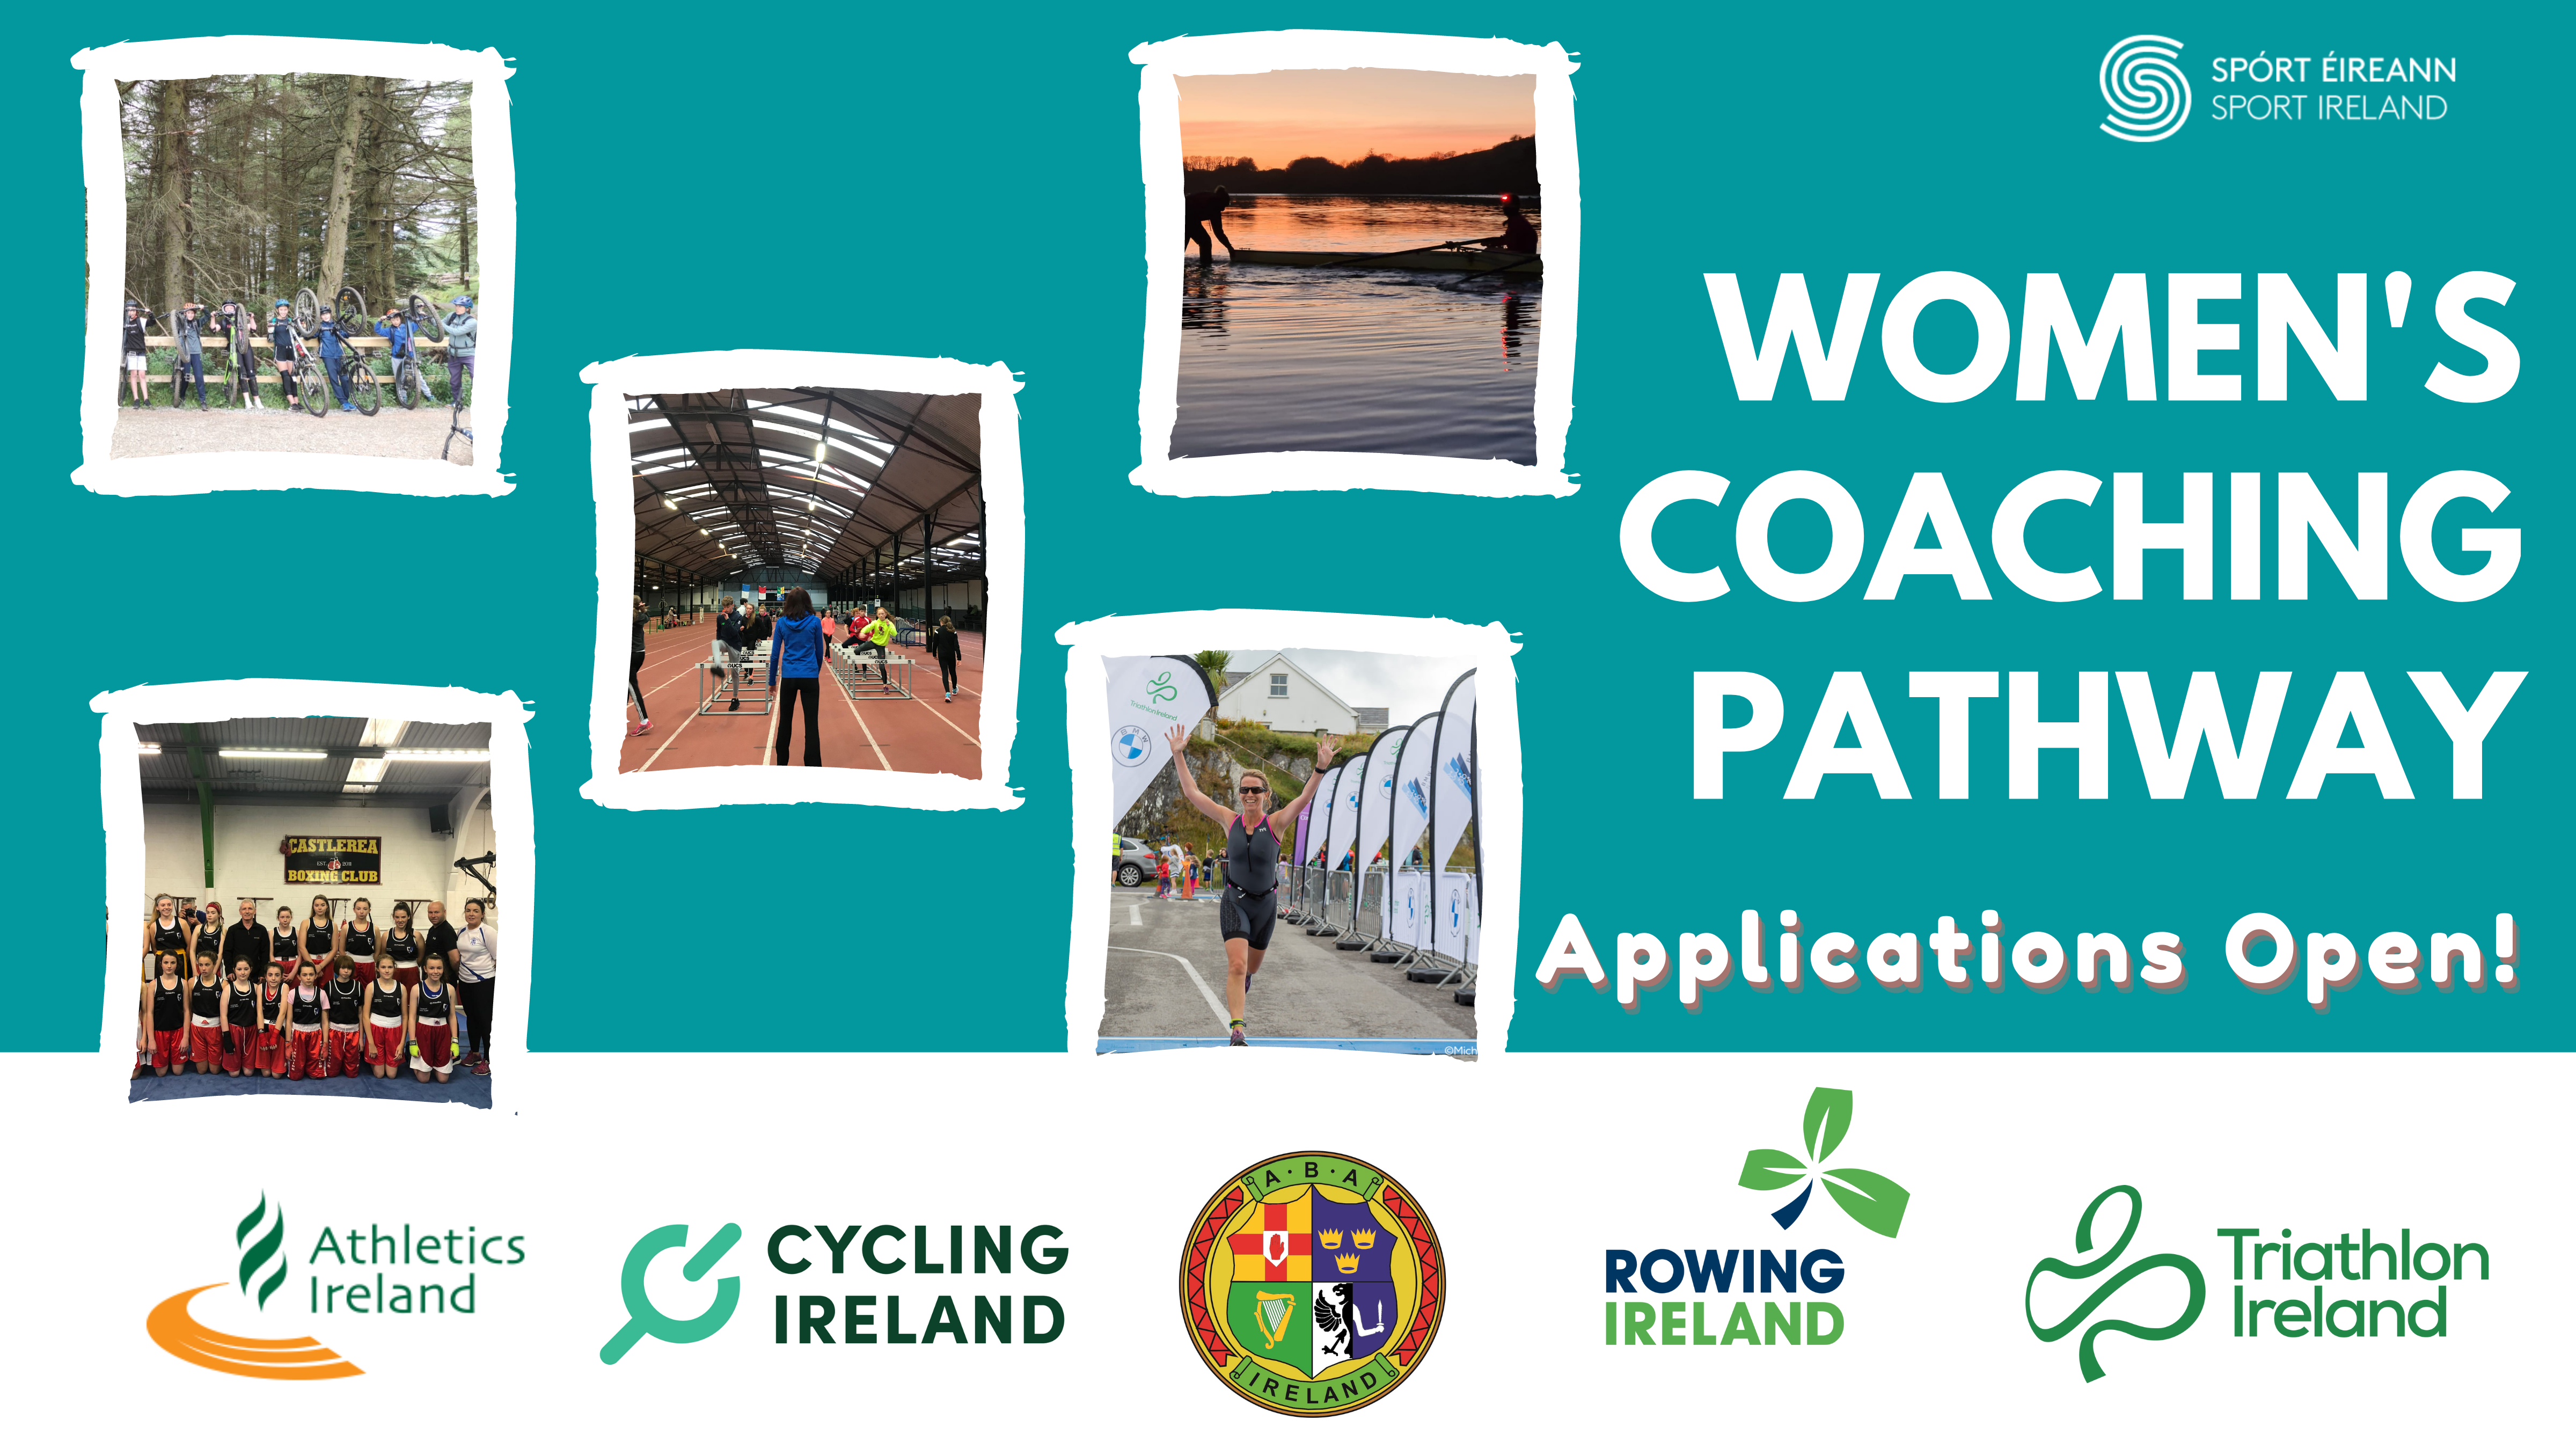 Applications are now open for the Women's Coaching Pathway 2021